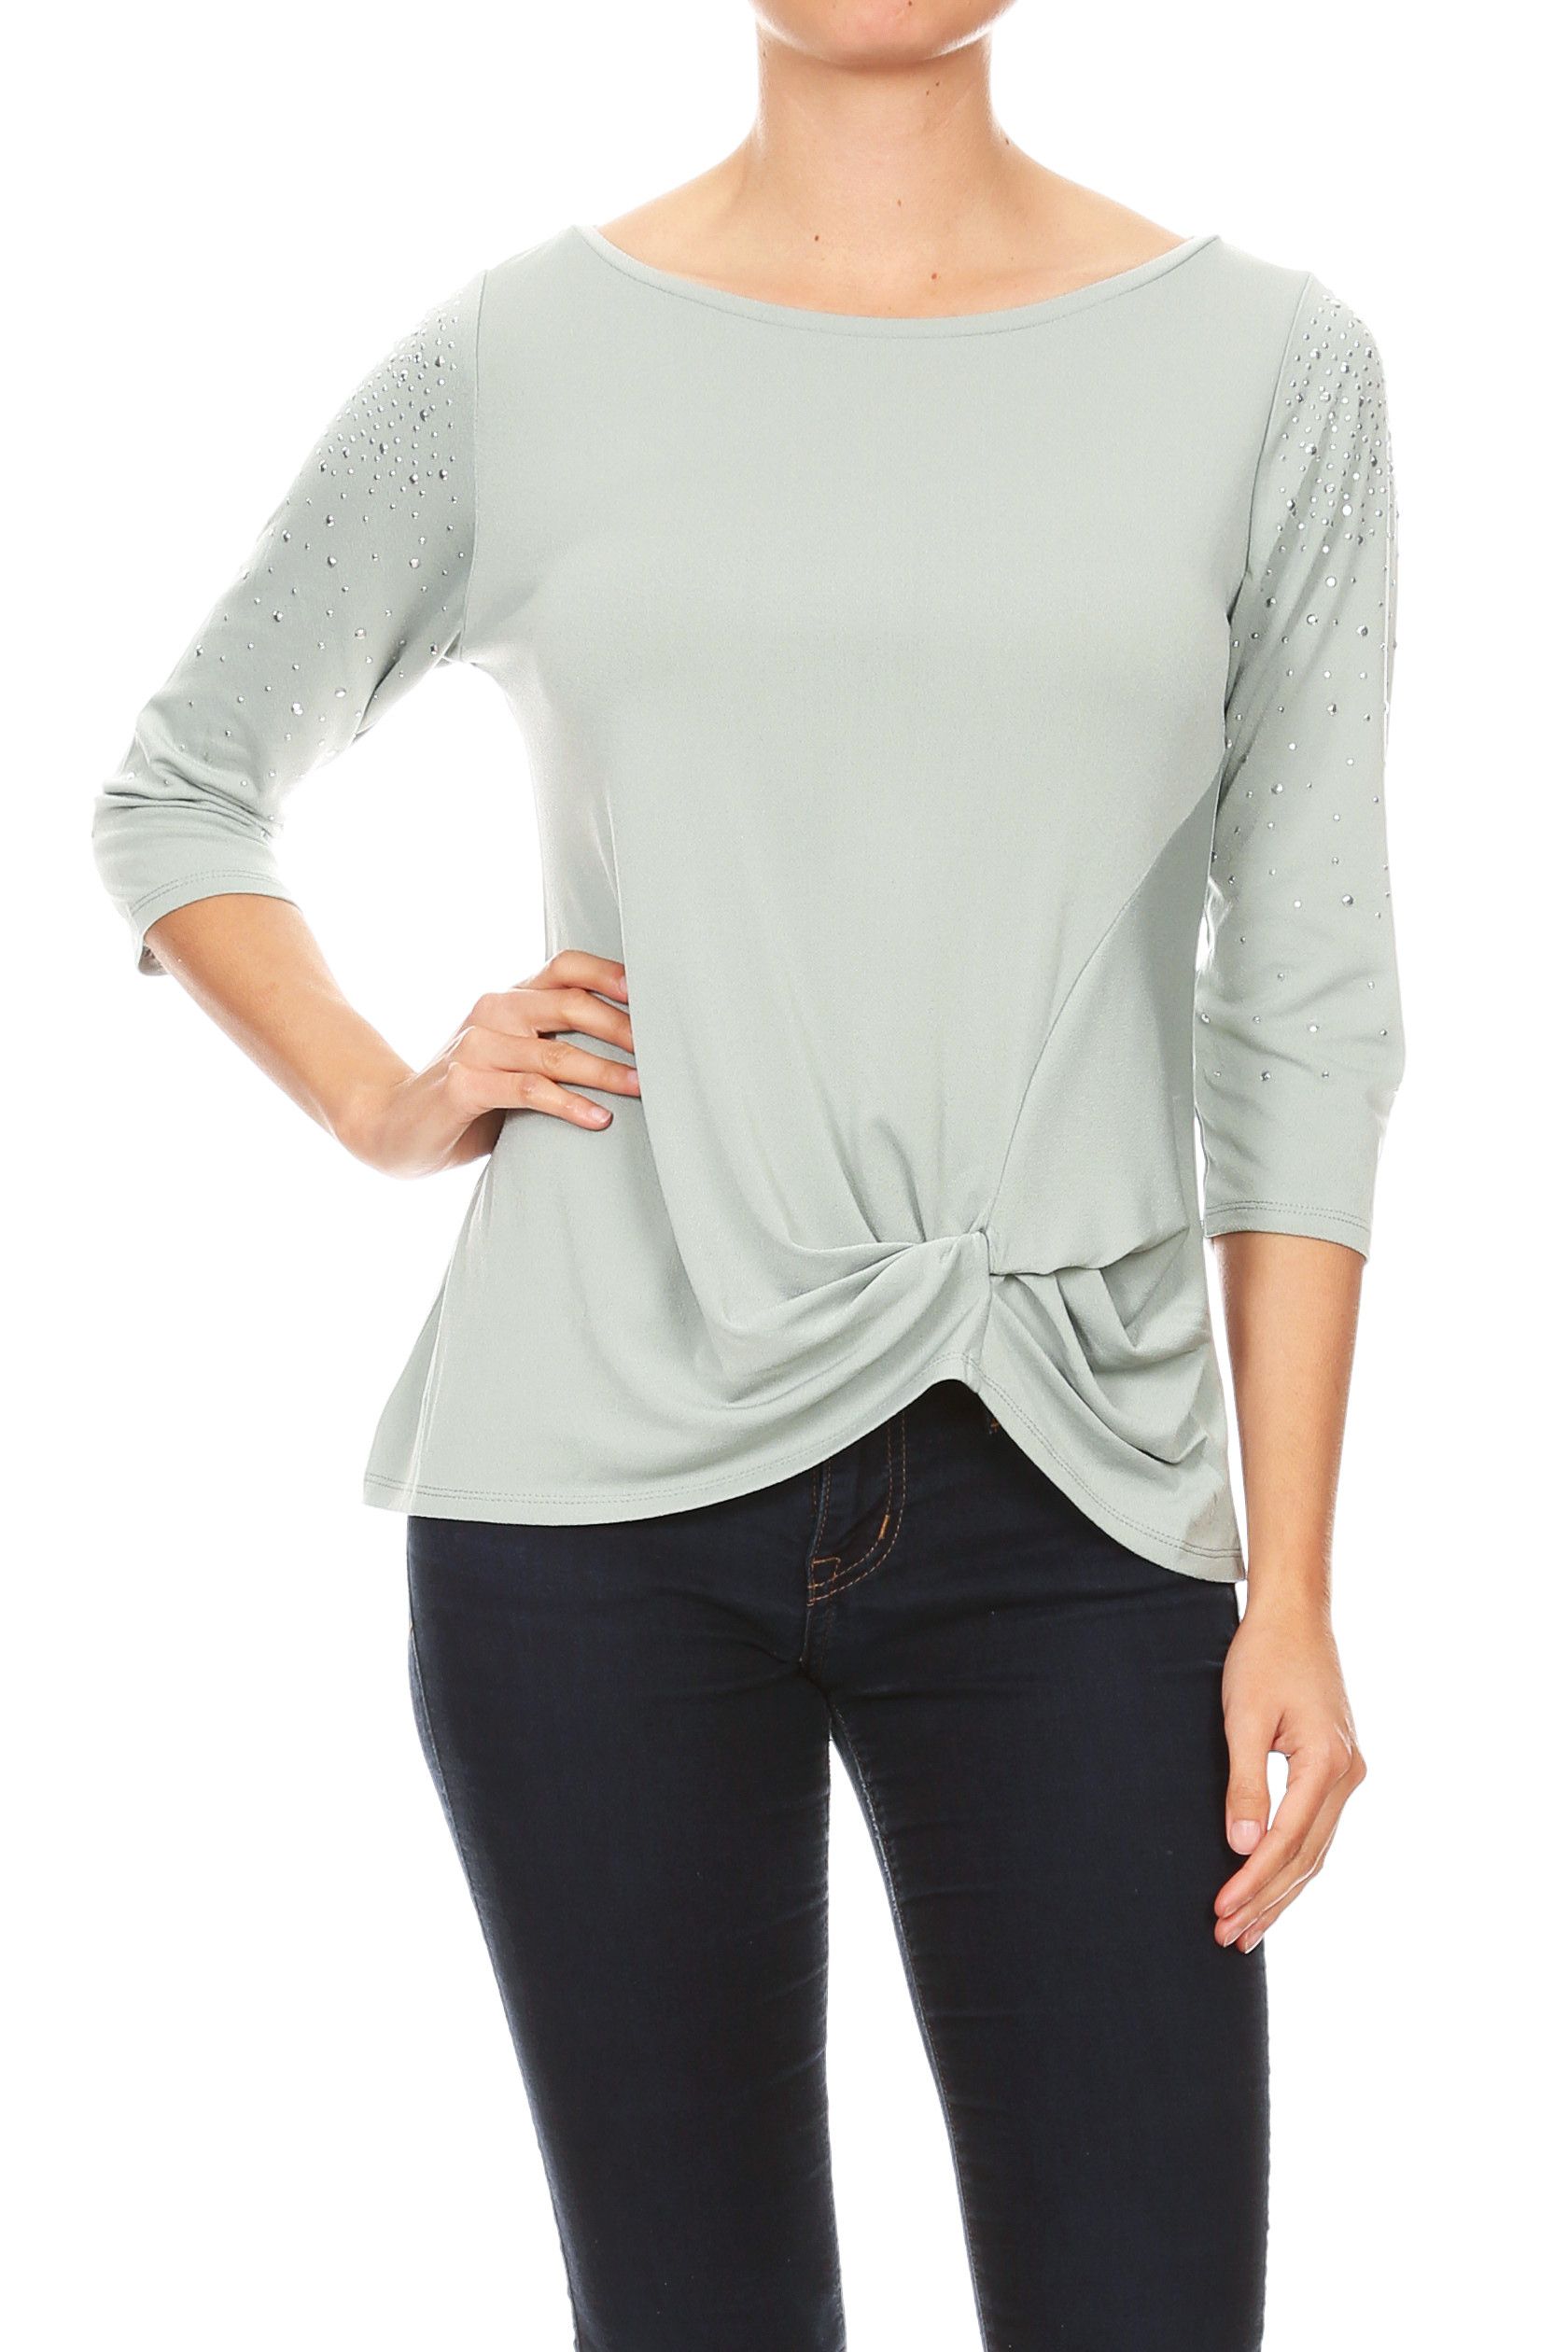 Stud Sleeve Crew Neck Knit Top with Side Knot - Sage/Silver - Front